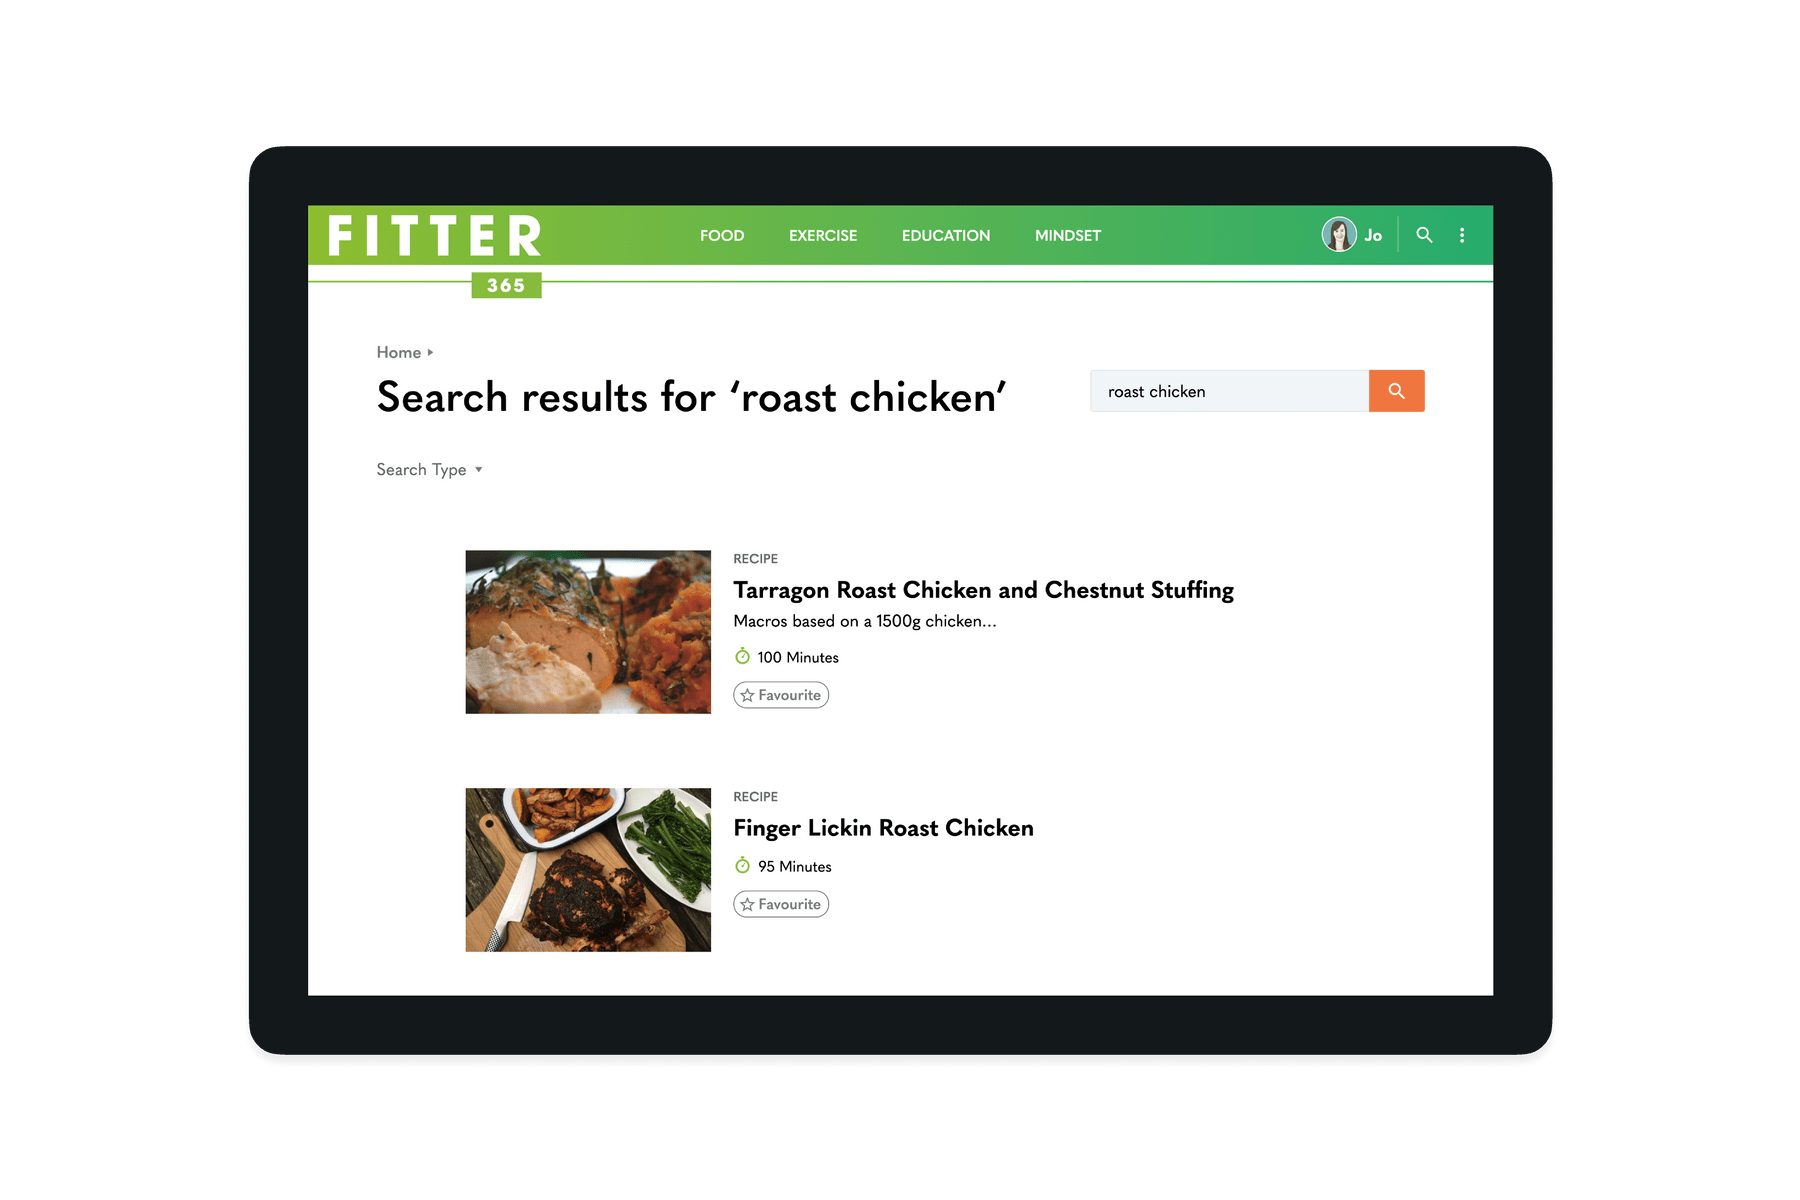 Tablet showing search results on the Fitter 365 website